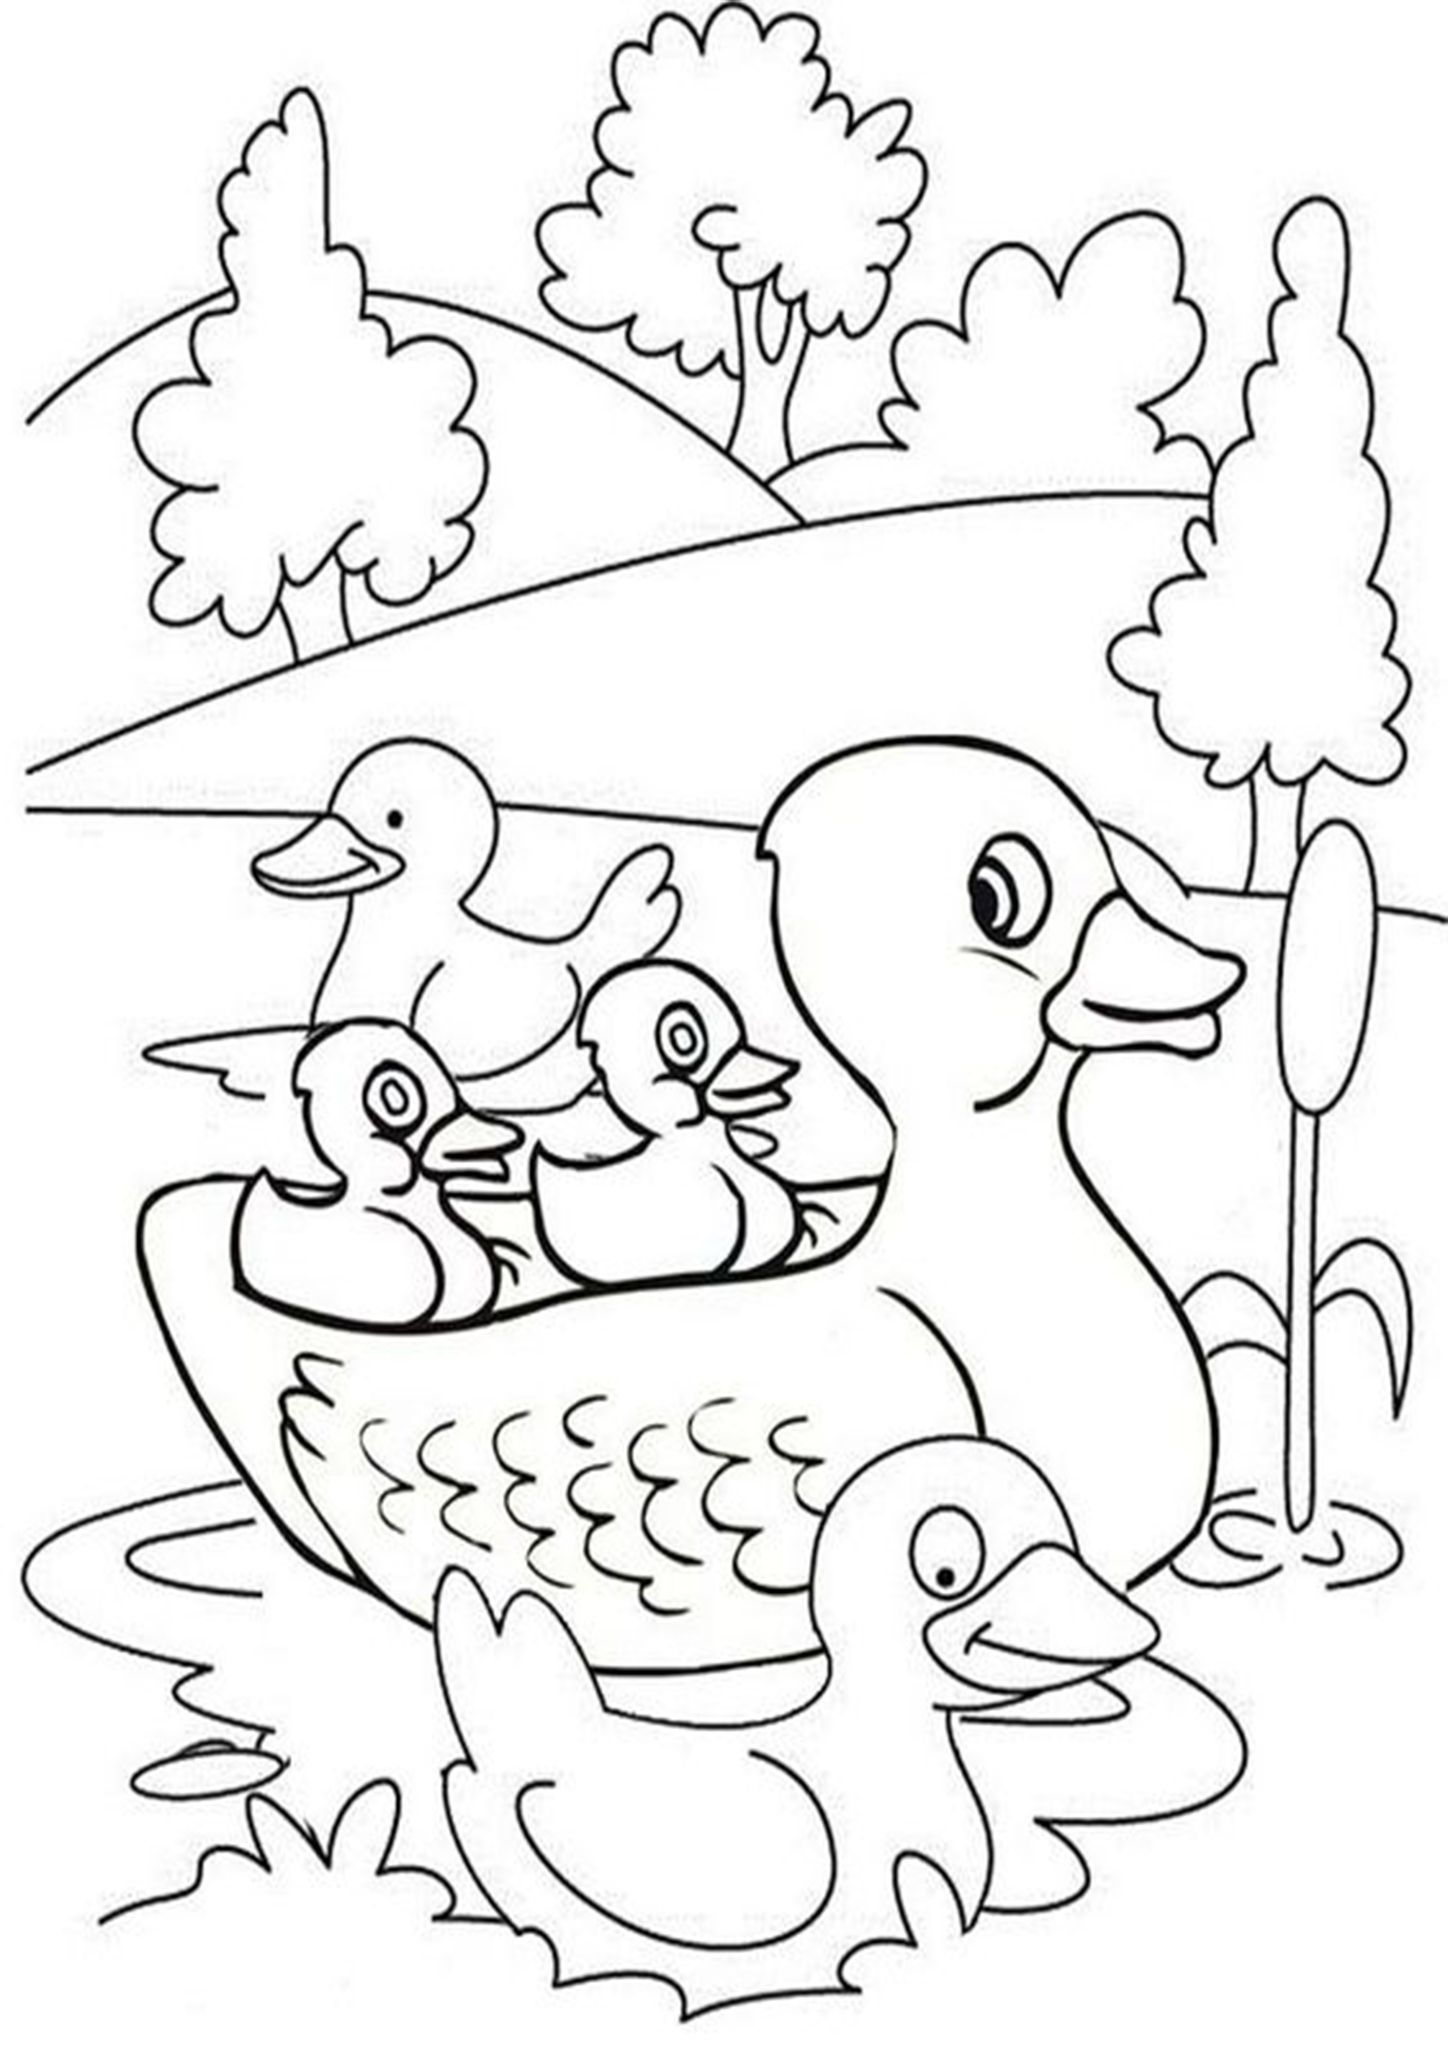 Free Easy To Print Duck Coloring Pages Farm Coloring Pages Bird Coloring Pages Coloring Pages